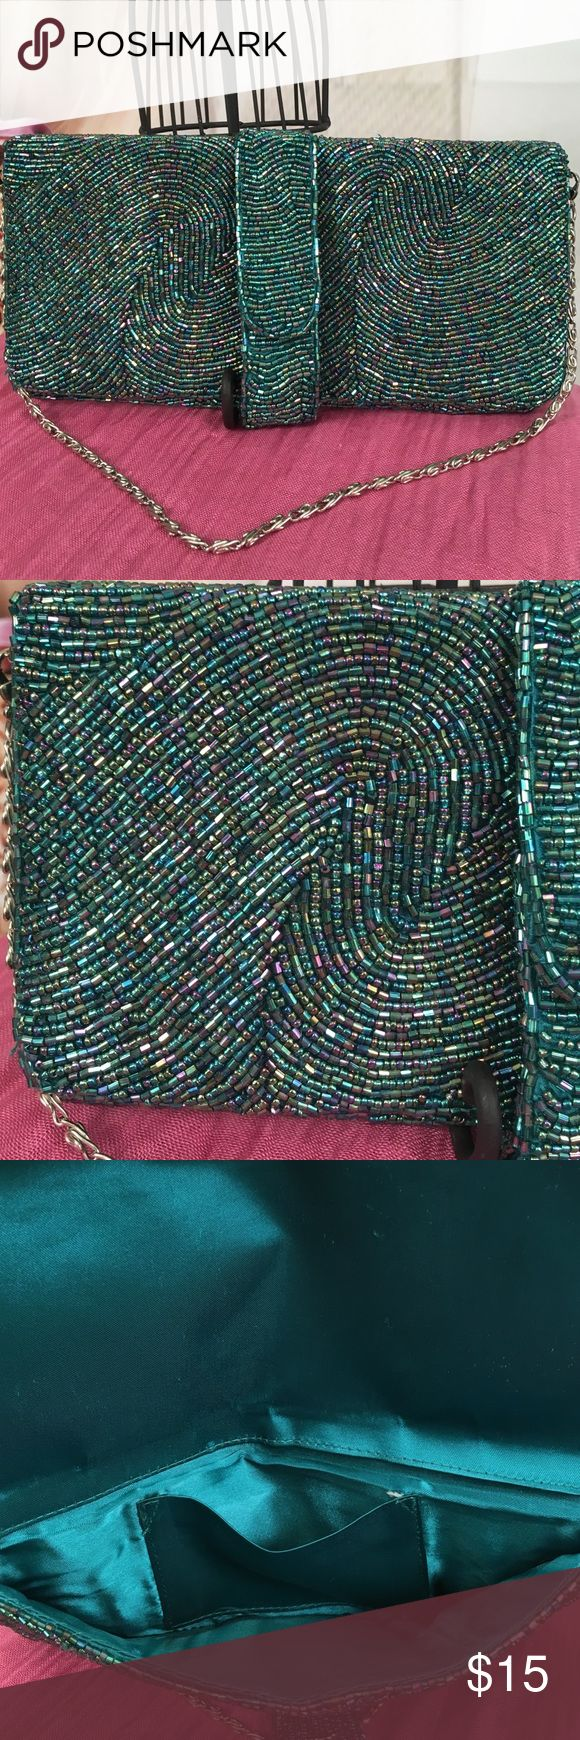 Oasis Blue Beaded Hand Clutch Today, featuring in Kaki Jo's closet is this beautiful blue beaded hand clutch.  Silver chain strap.  Beadwork is all intact.  Magnetic closure.  Good condition.  Inside the lining has a small stain, see photo.  Also there is a tiny tear where the pocket is sewn. Still gorgeous bag for evening wear! Oasis Bags Clutches & Wristlets